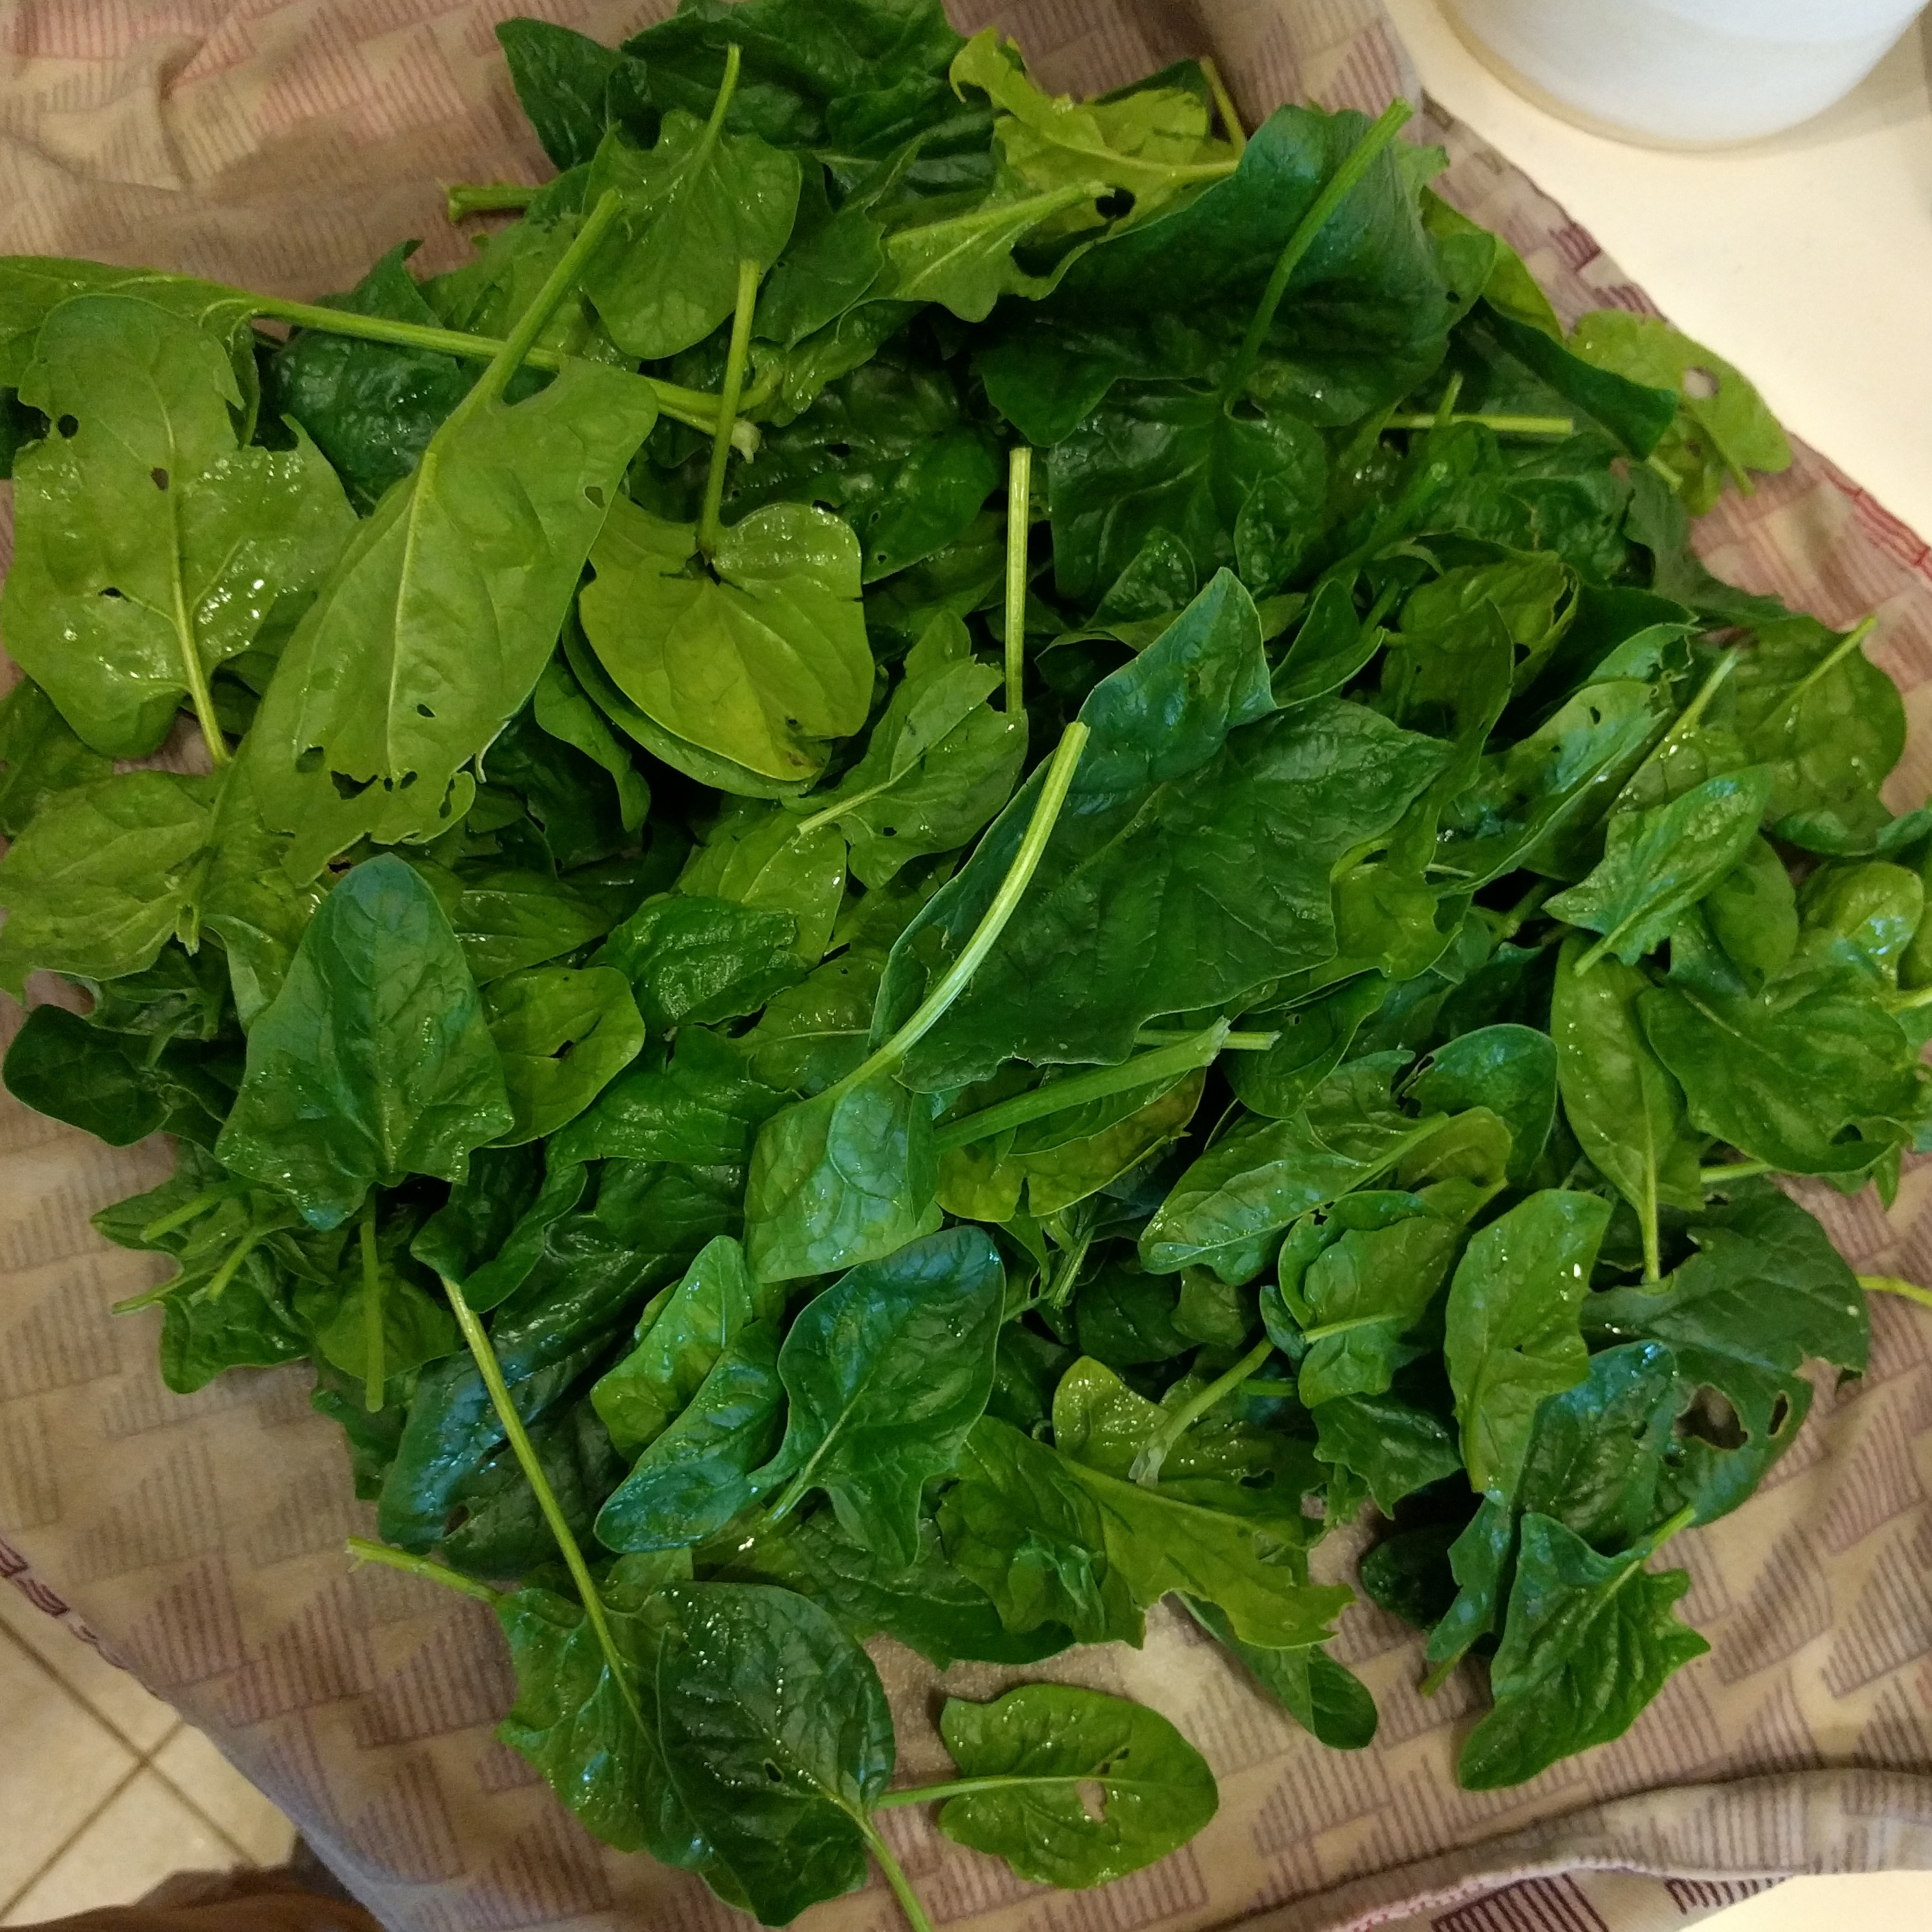 A pile of cleaned spinach.